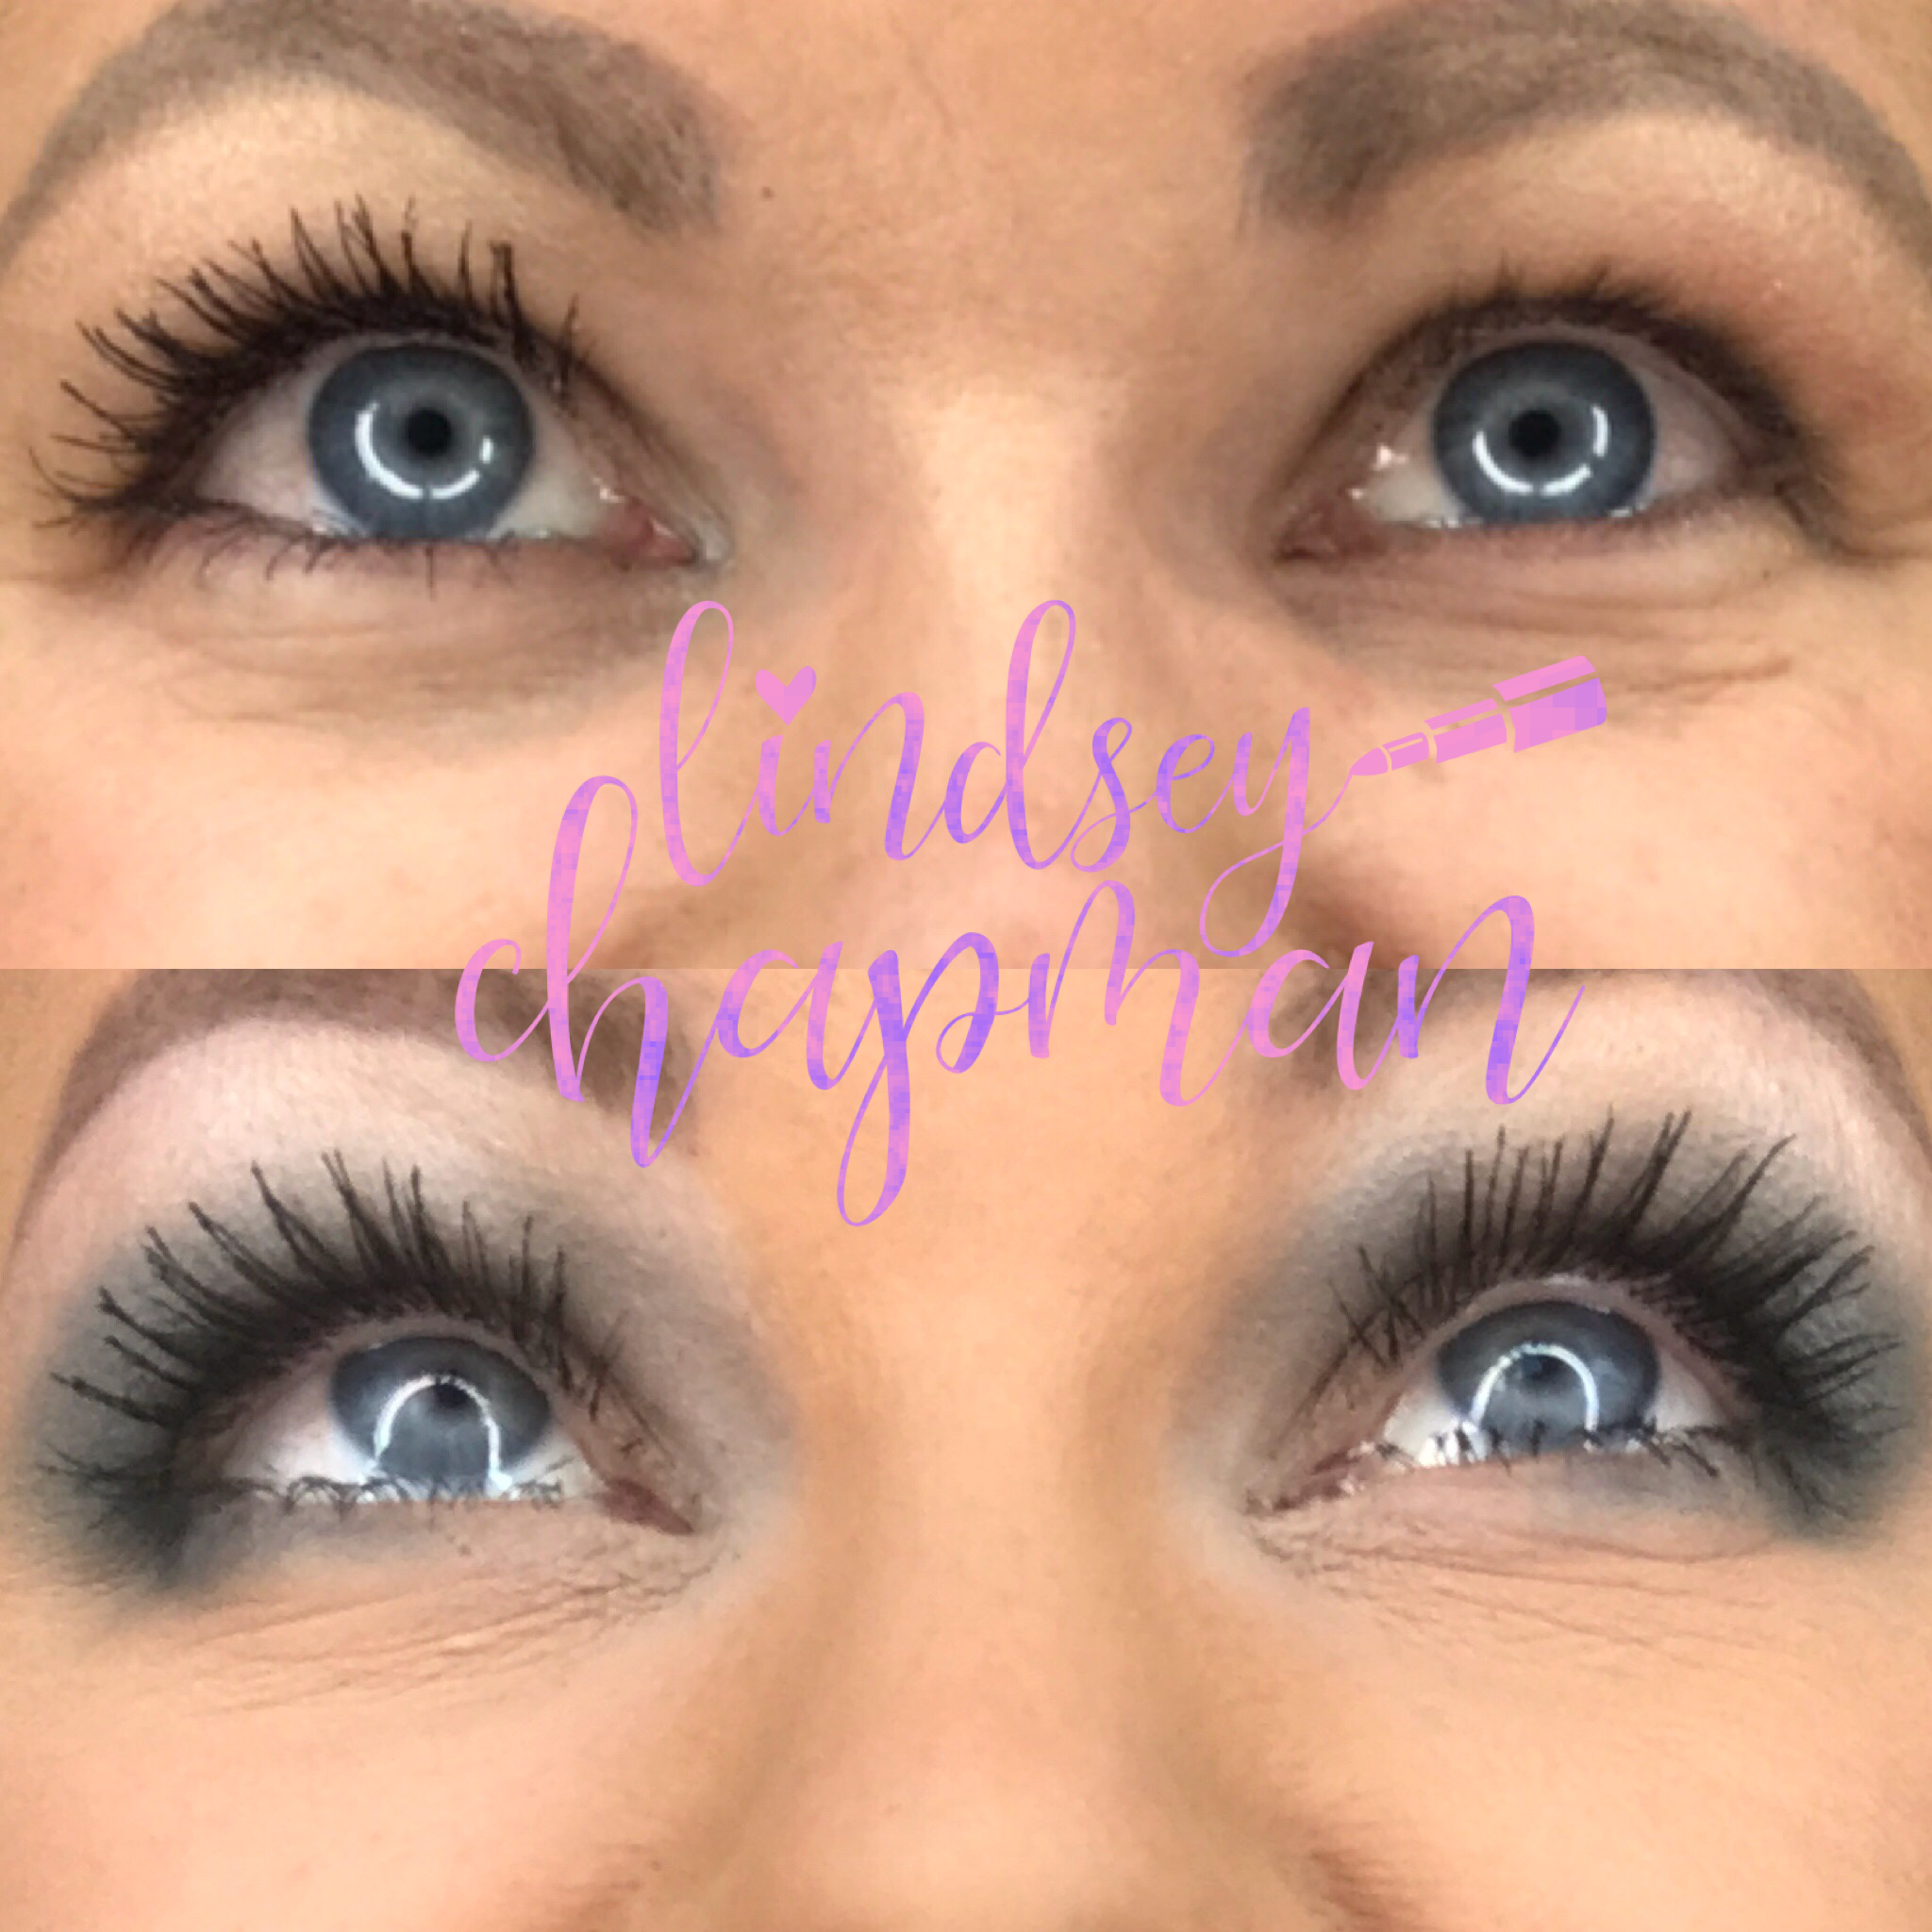 d8643f1315c Younique Esteem Lash Serum Results after only 2 weeks of usage at night at  bedtime: